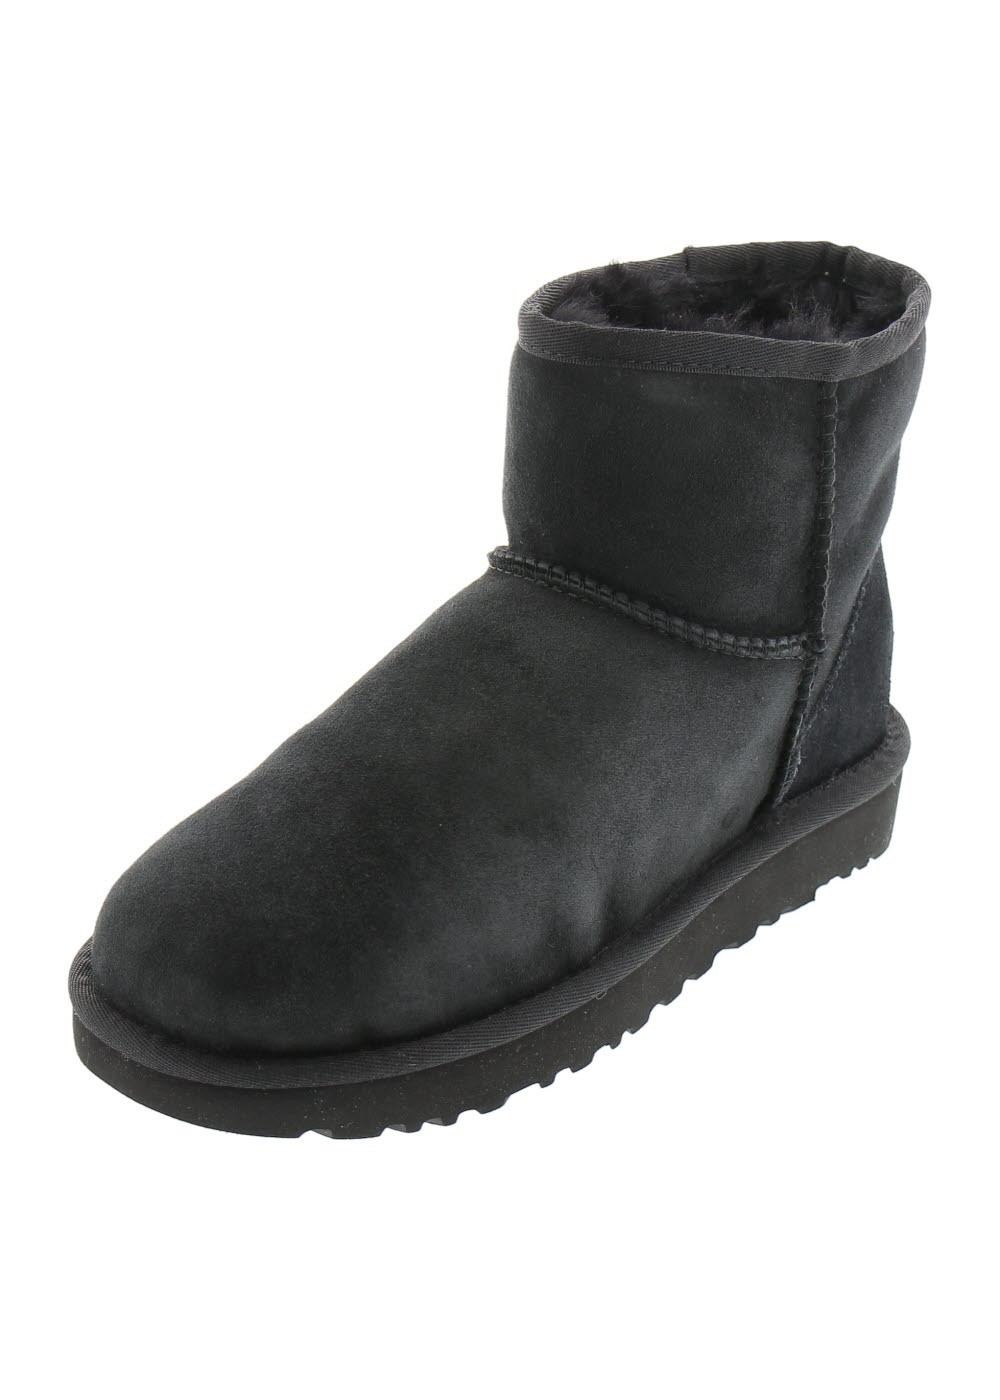 CLASSIC MINI 2|ブラック|ブーツ|Early Autumn & Winter~UGG~|最大30%OFF